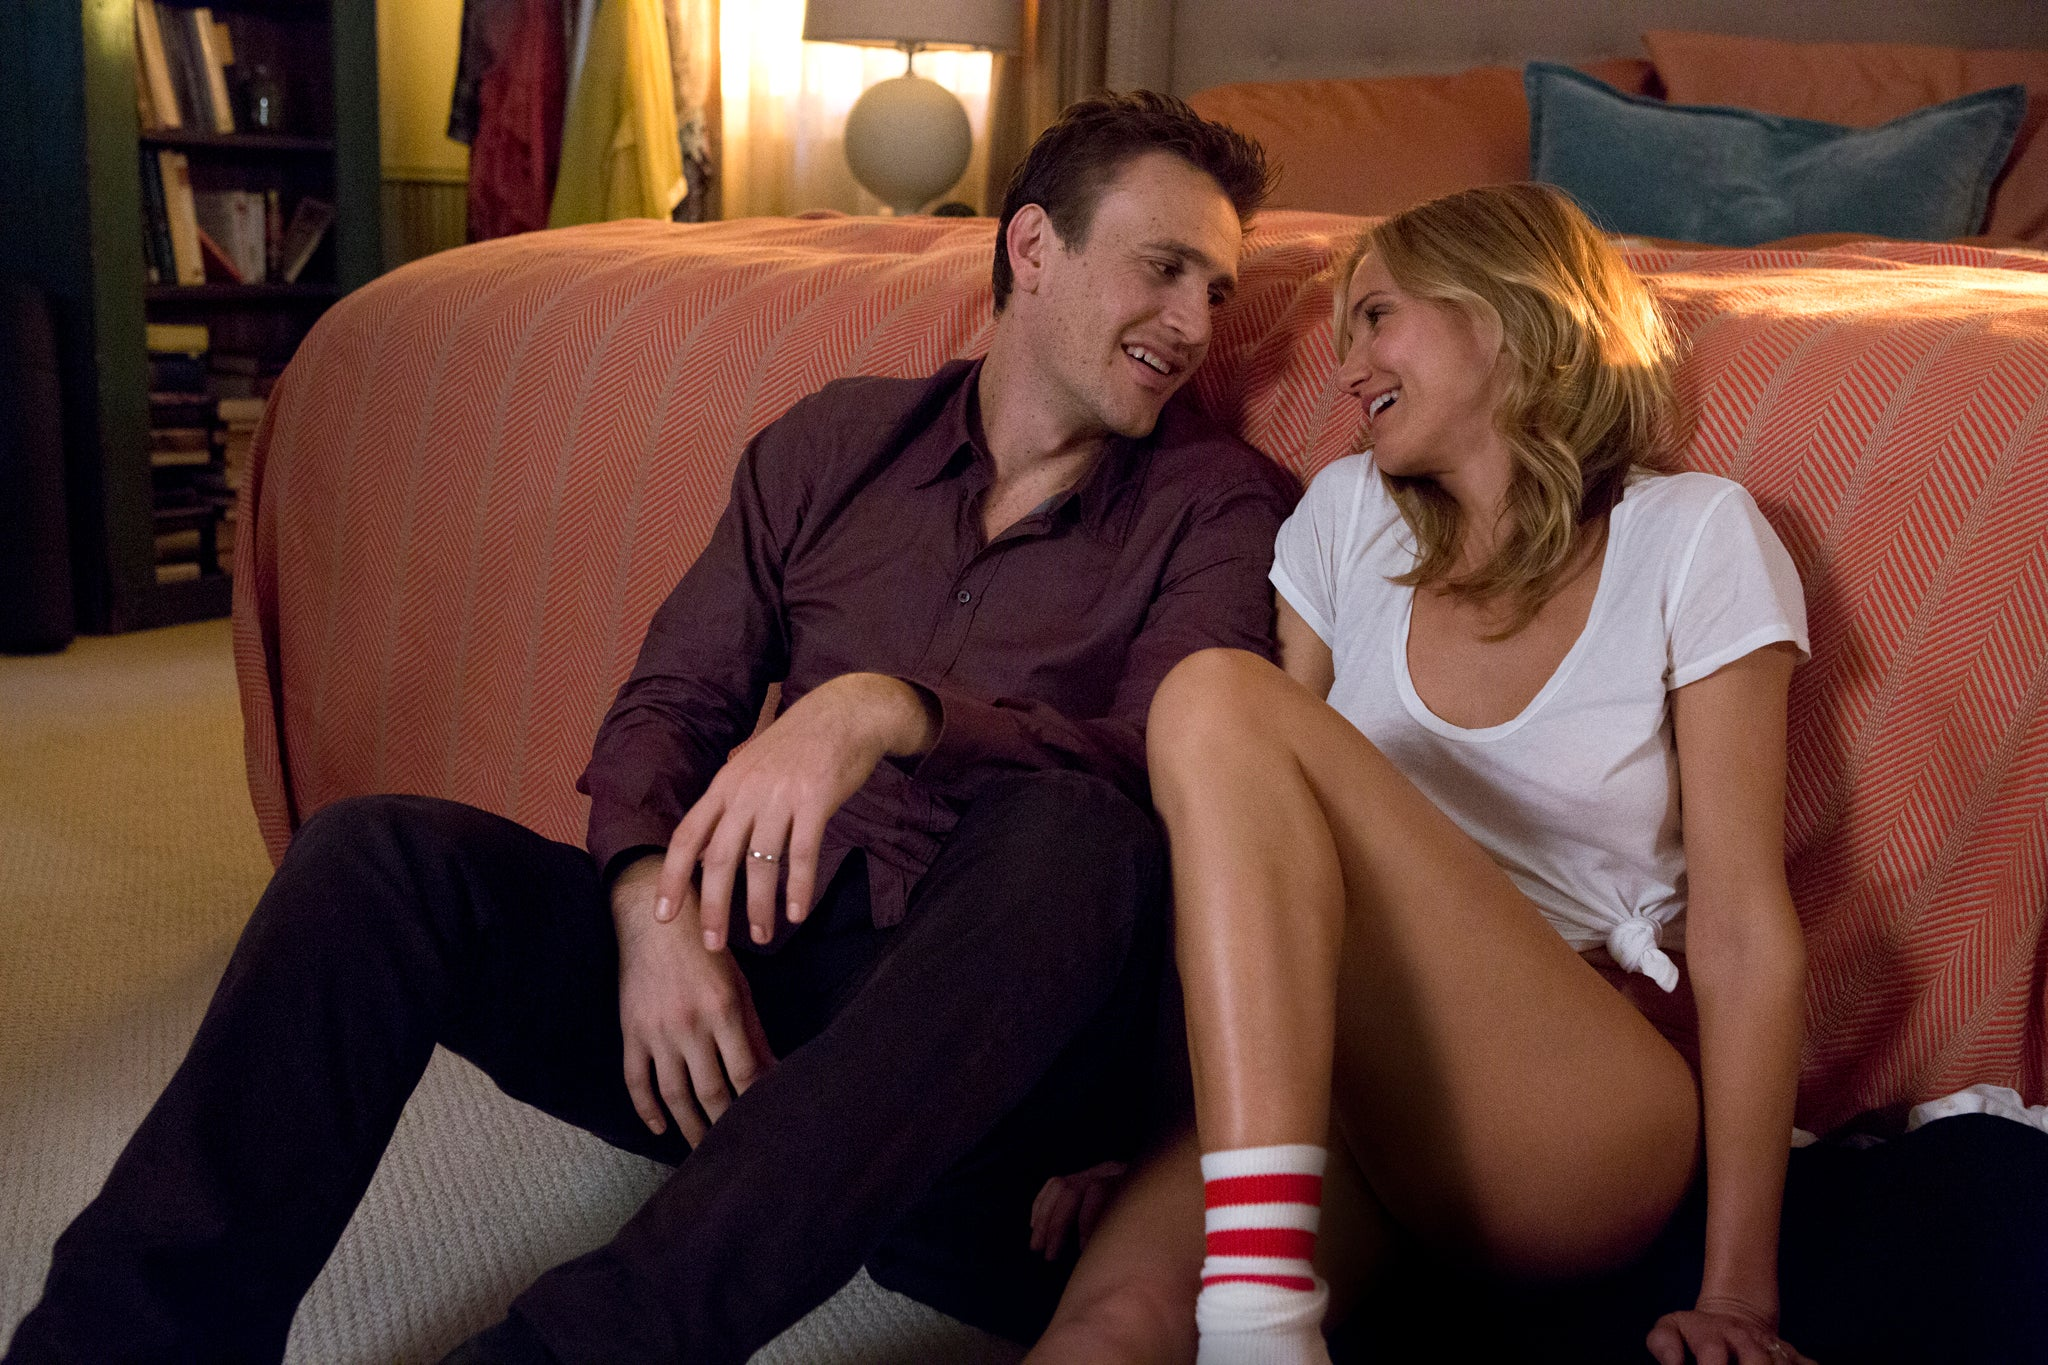 Cameron Diaz In Porn sex tape, film review: cameron diaz and jason segel star in